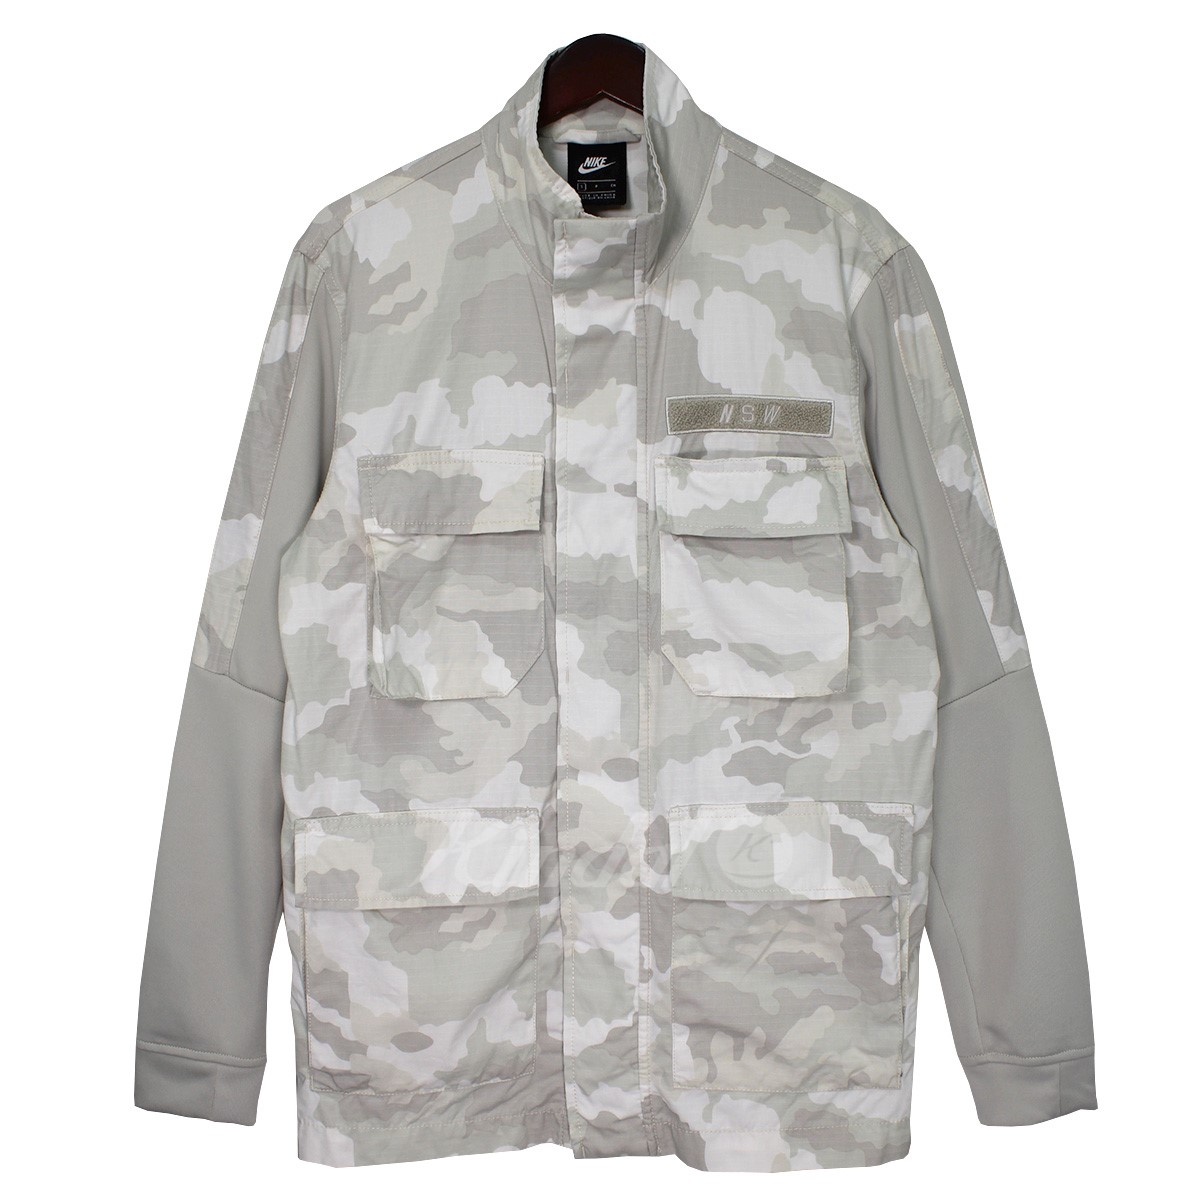 666d08a3cf05 18AW NSW CAMO JACKET sleeve reshuffling camouflage military jacket white X  gray size  S